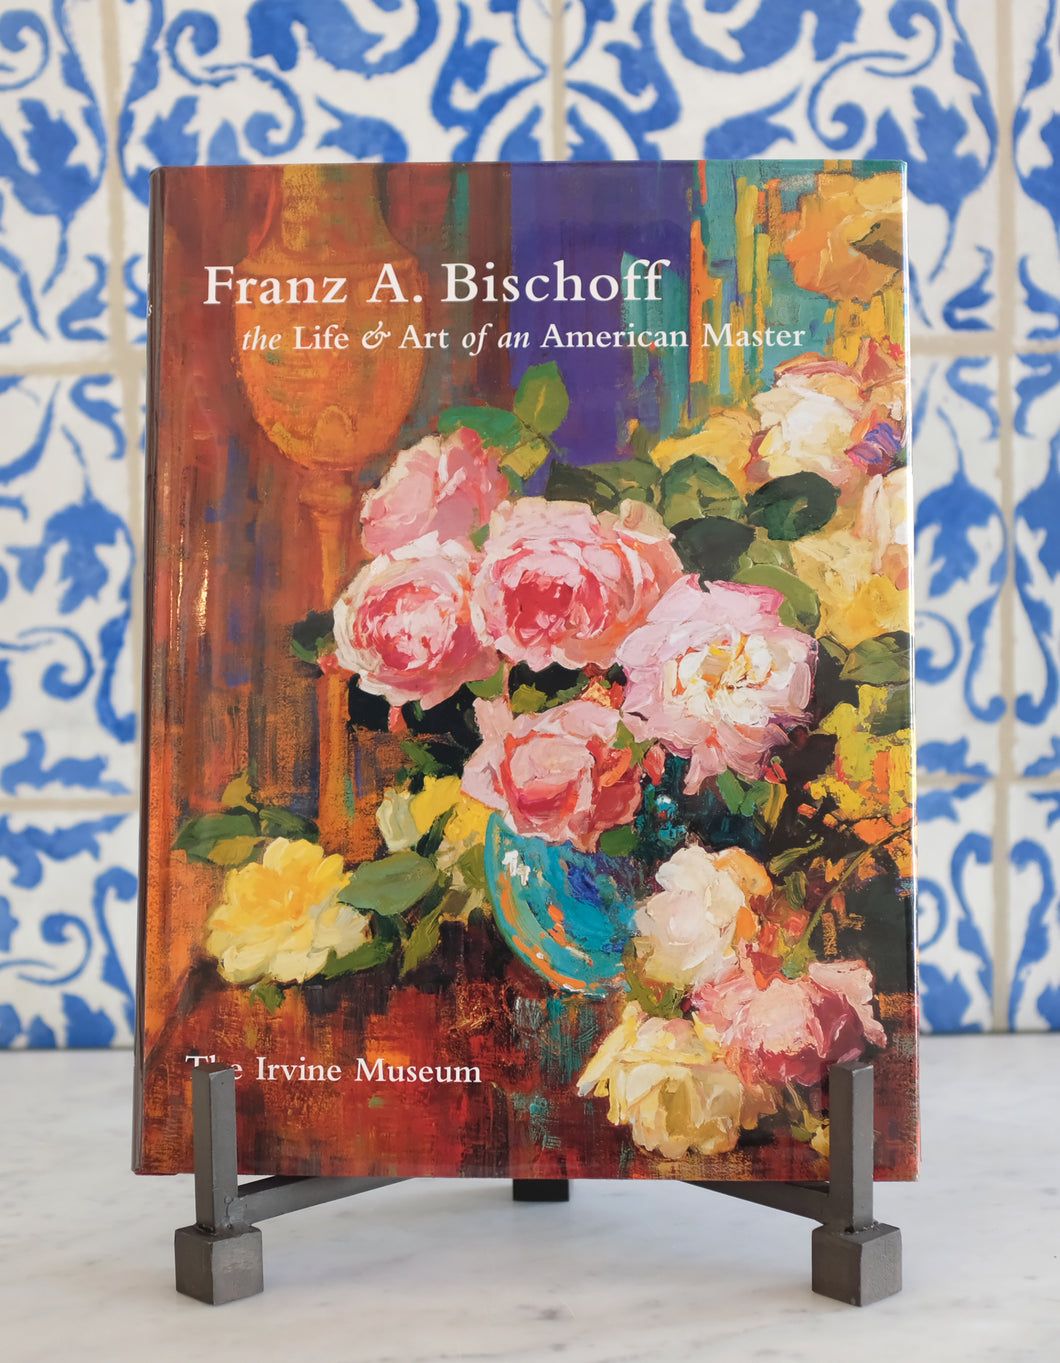 Franz A Bischoff: the Life & Art of an American Master